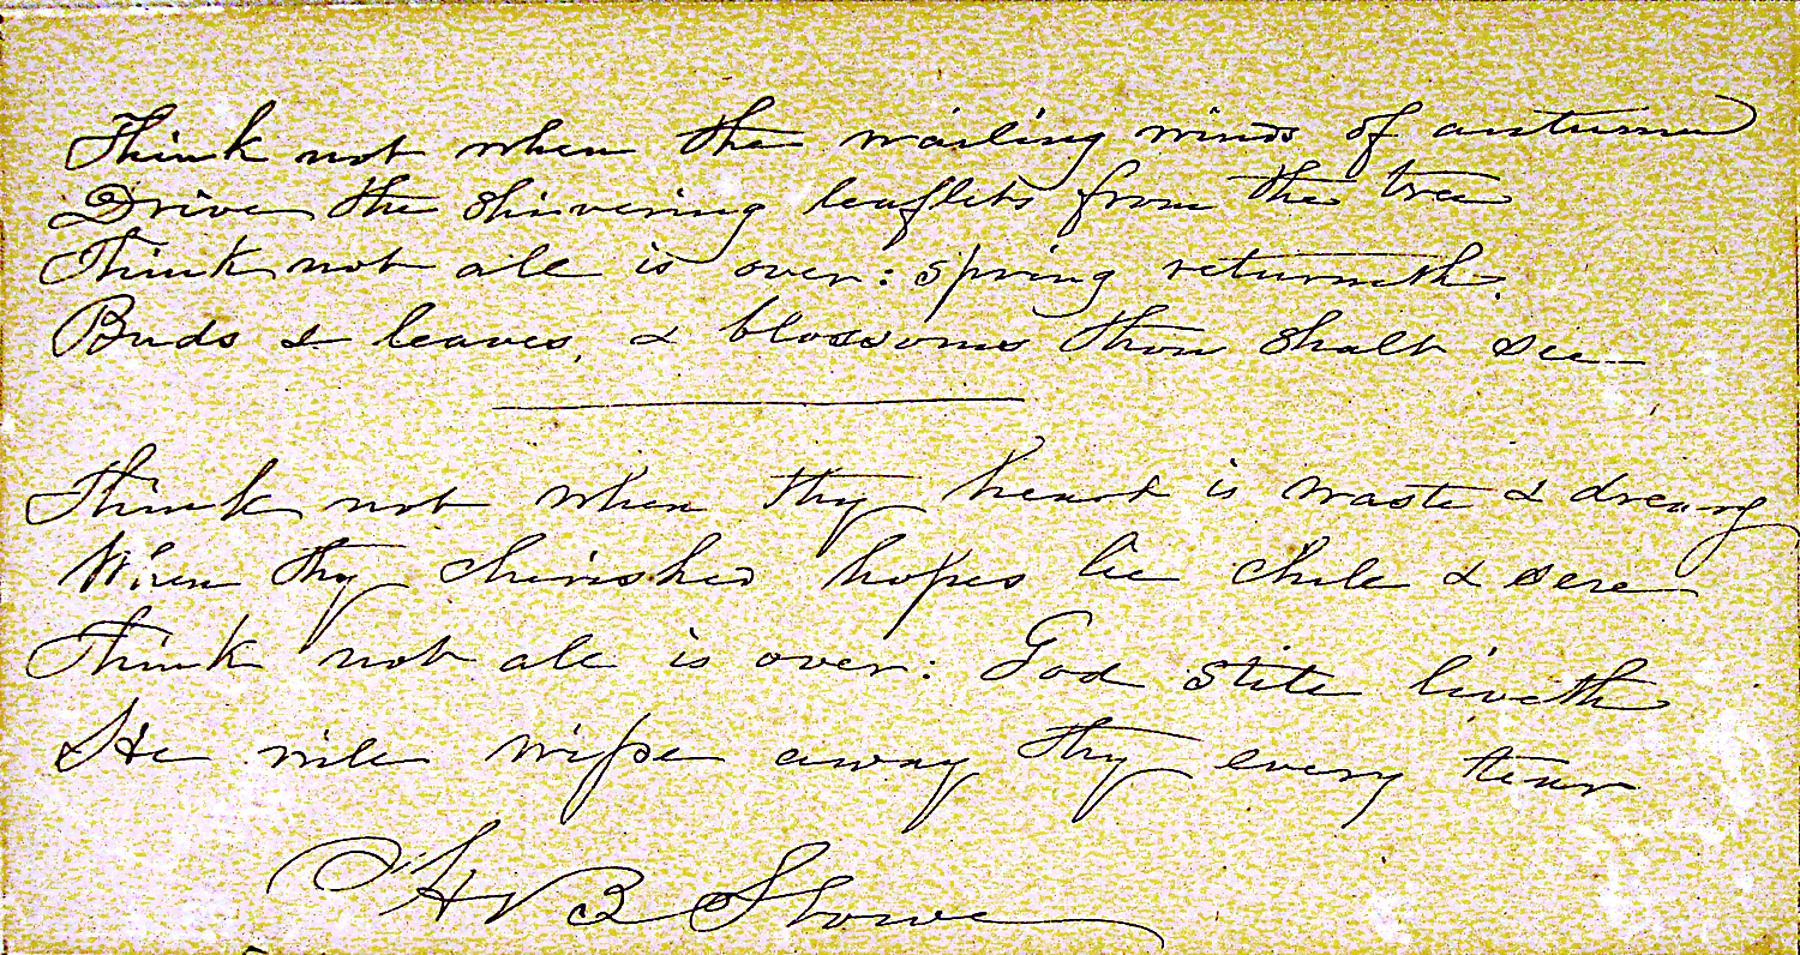 Letter from Harriet Beecher Stowe